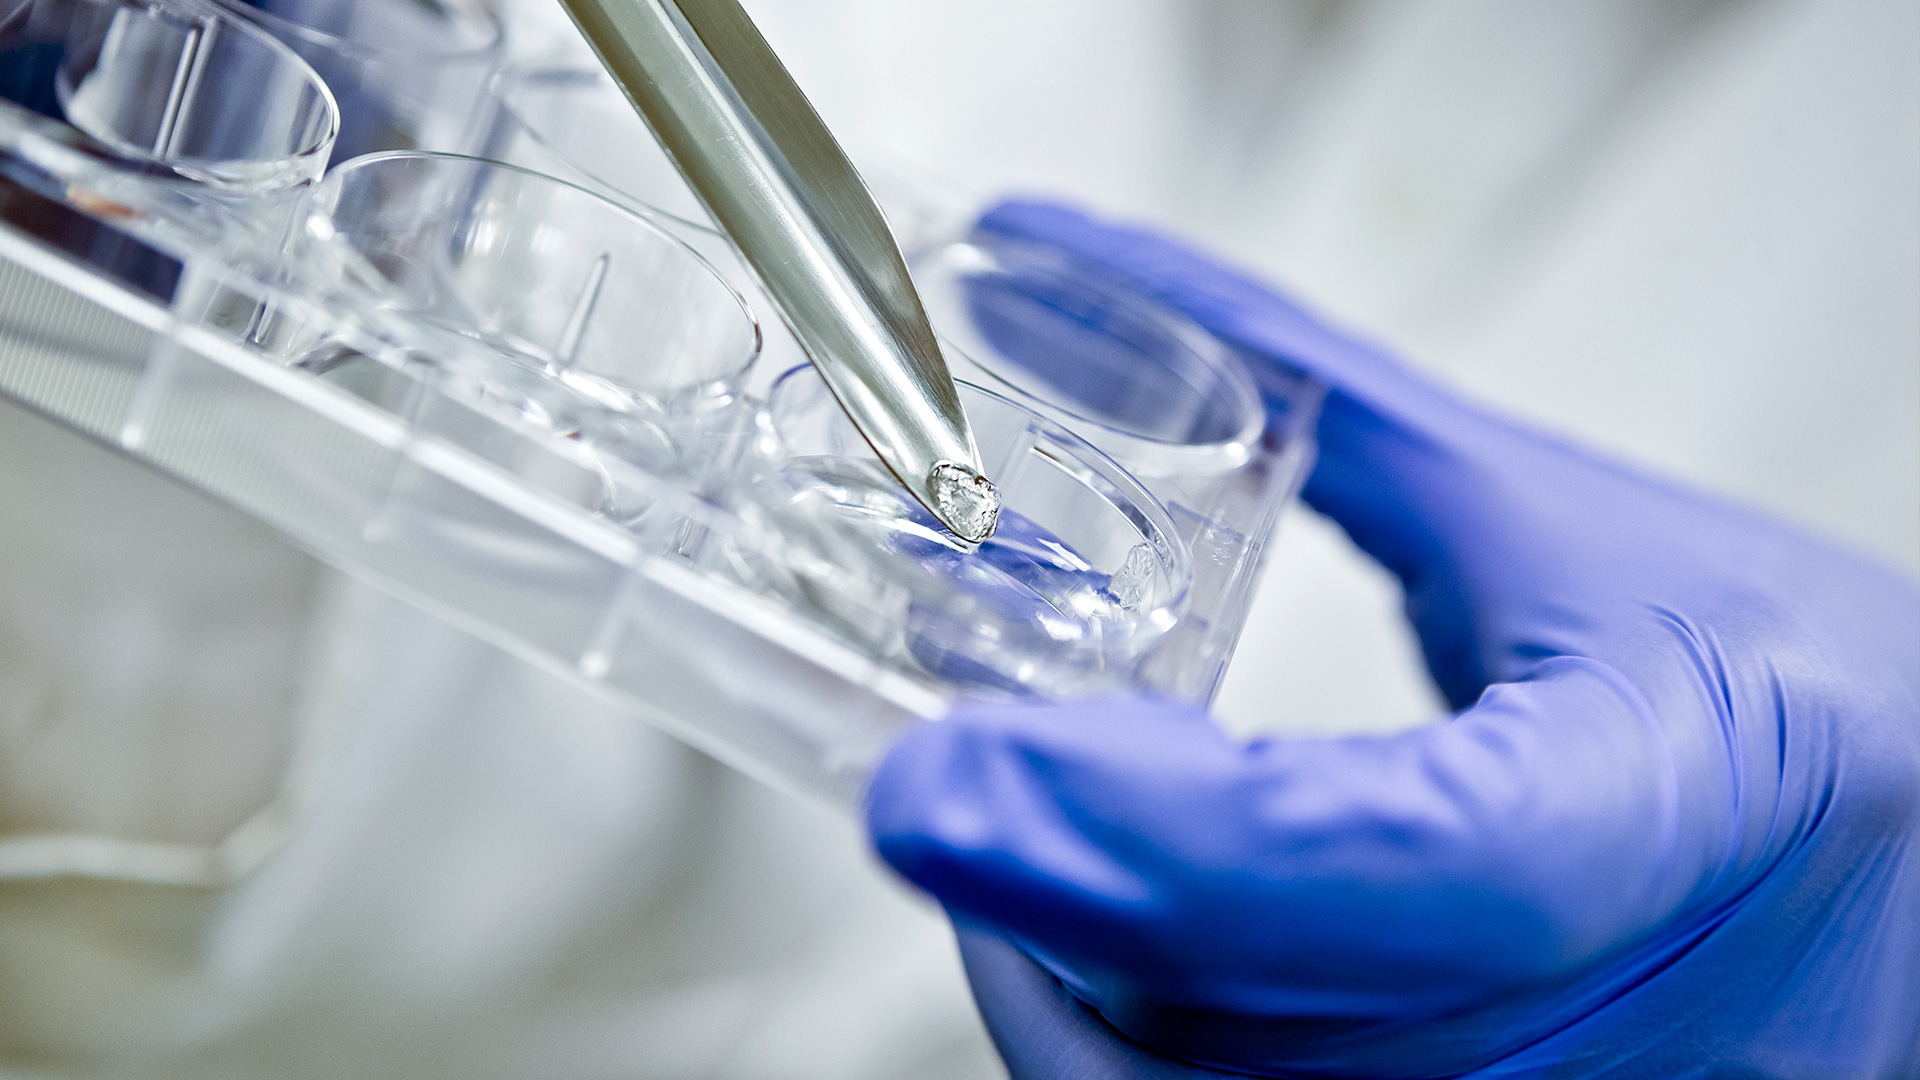 UMD, UMB and Partners Collaborate to 3D Bioprint Tissue, Grafts and More